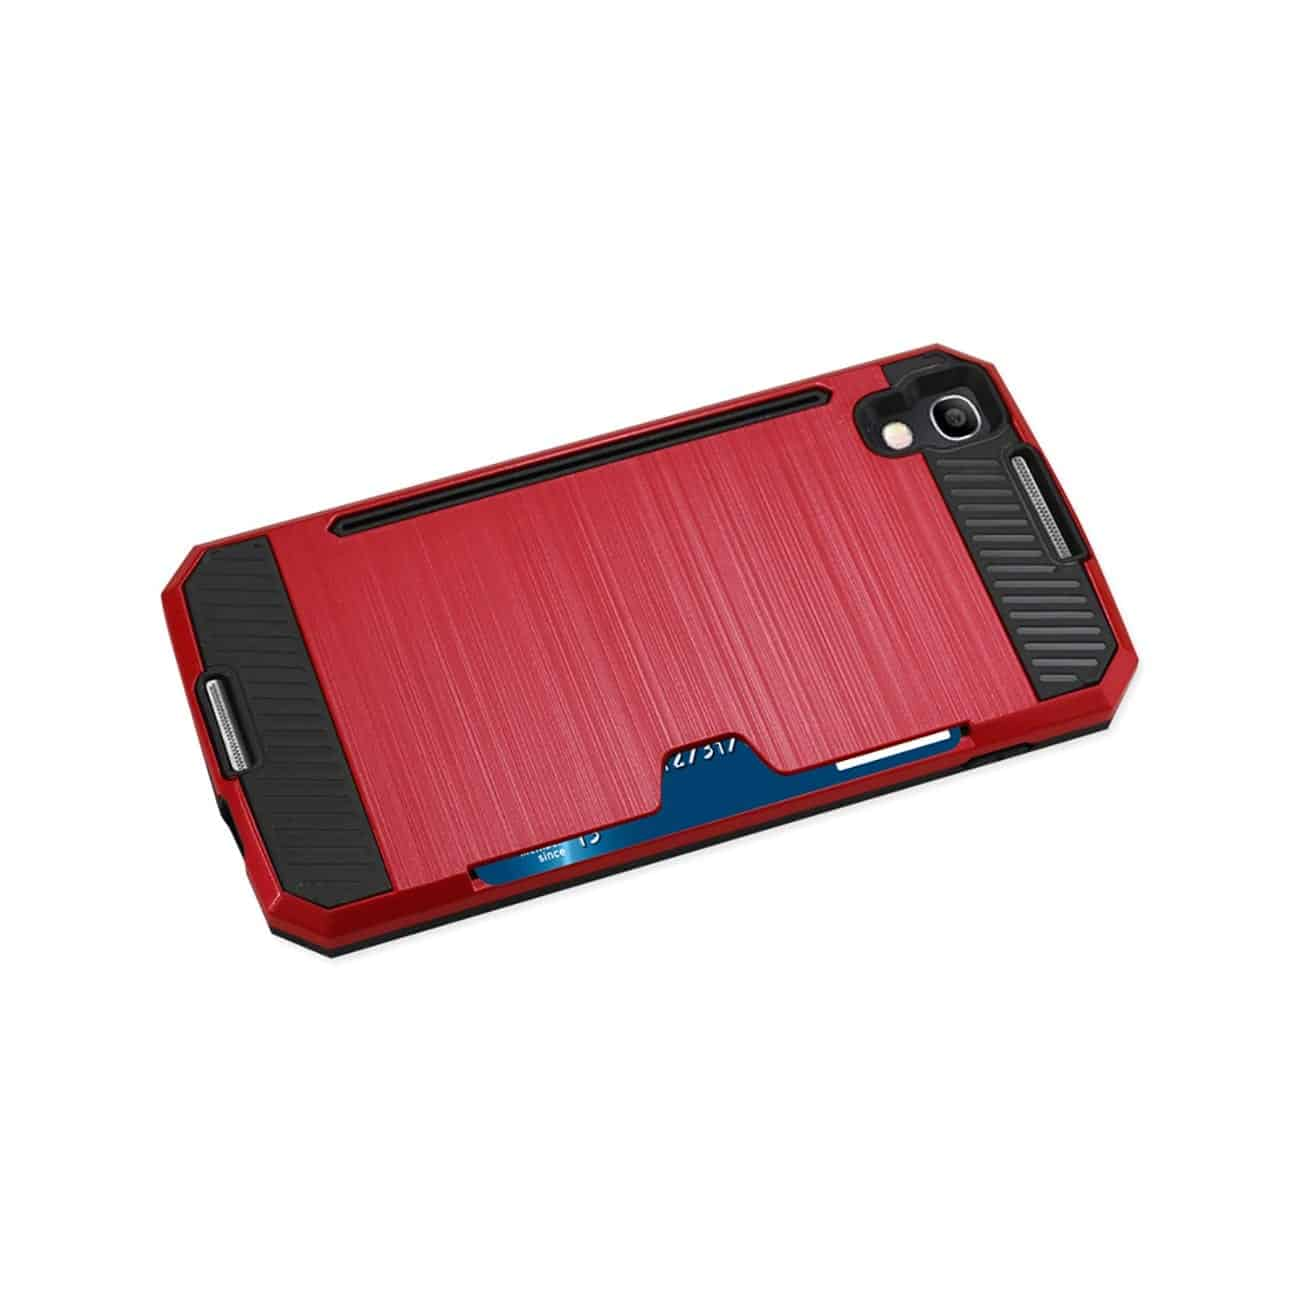 ALCATEL ONE TOUCH IDOL 4 SLIM ARMOR HYBRID CASE WITH CARD HOLDER IN RED